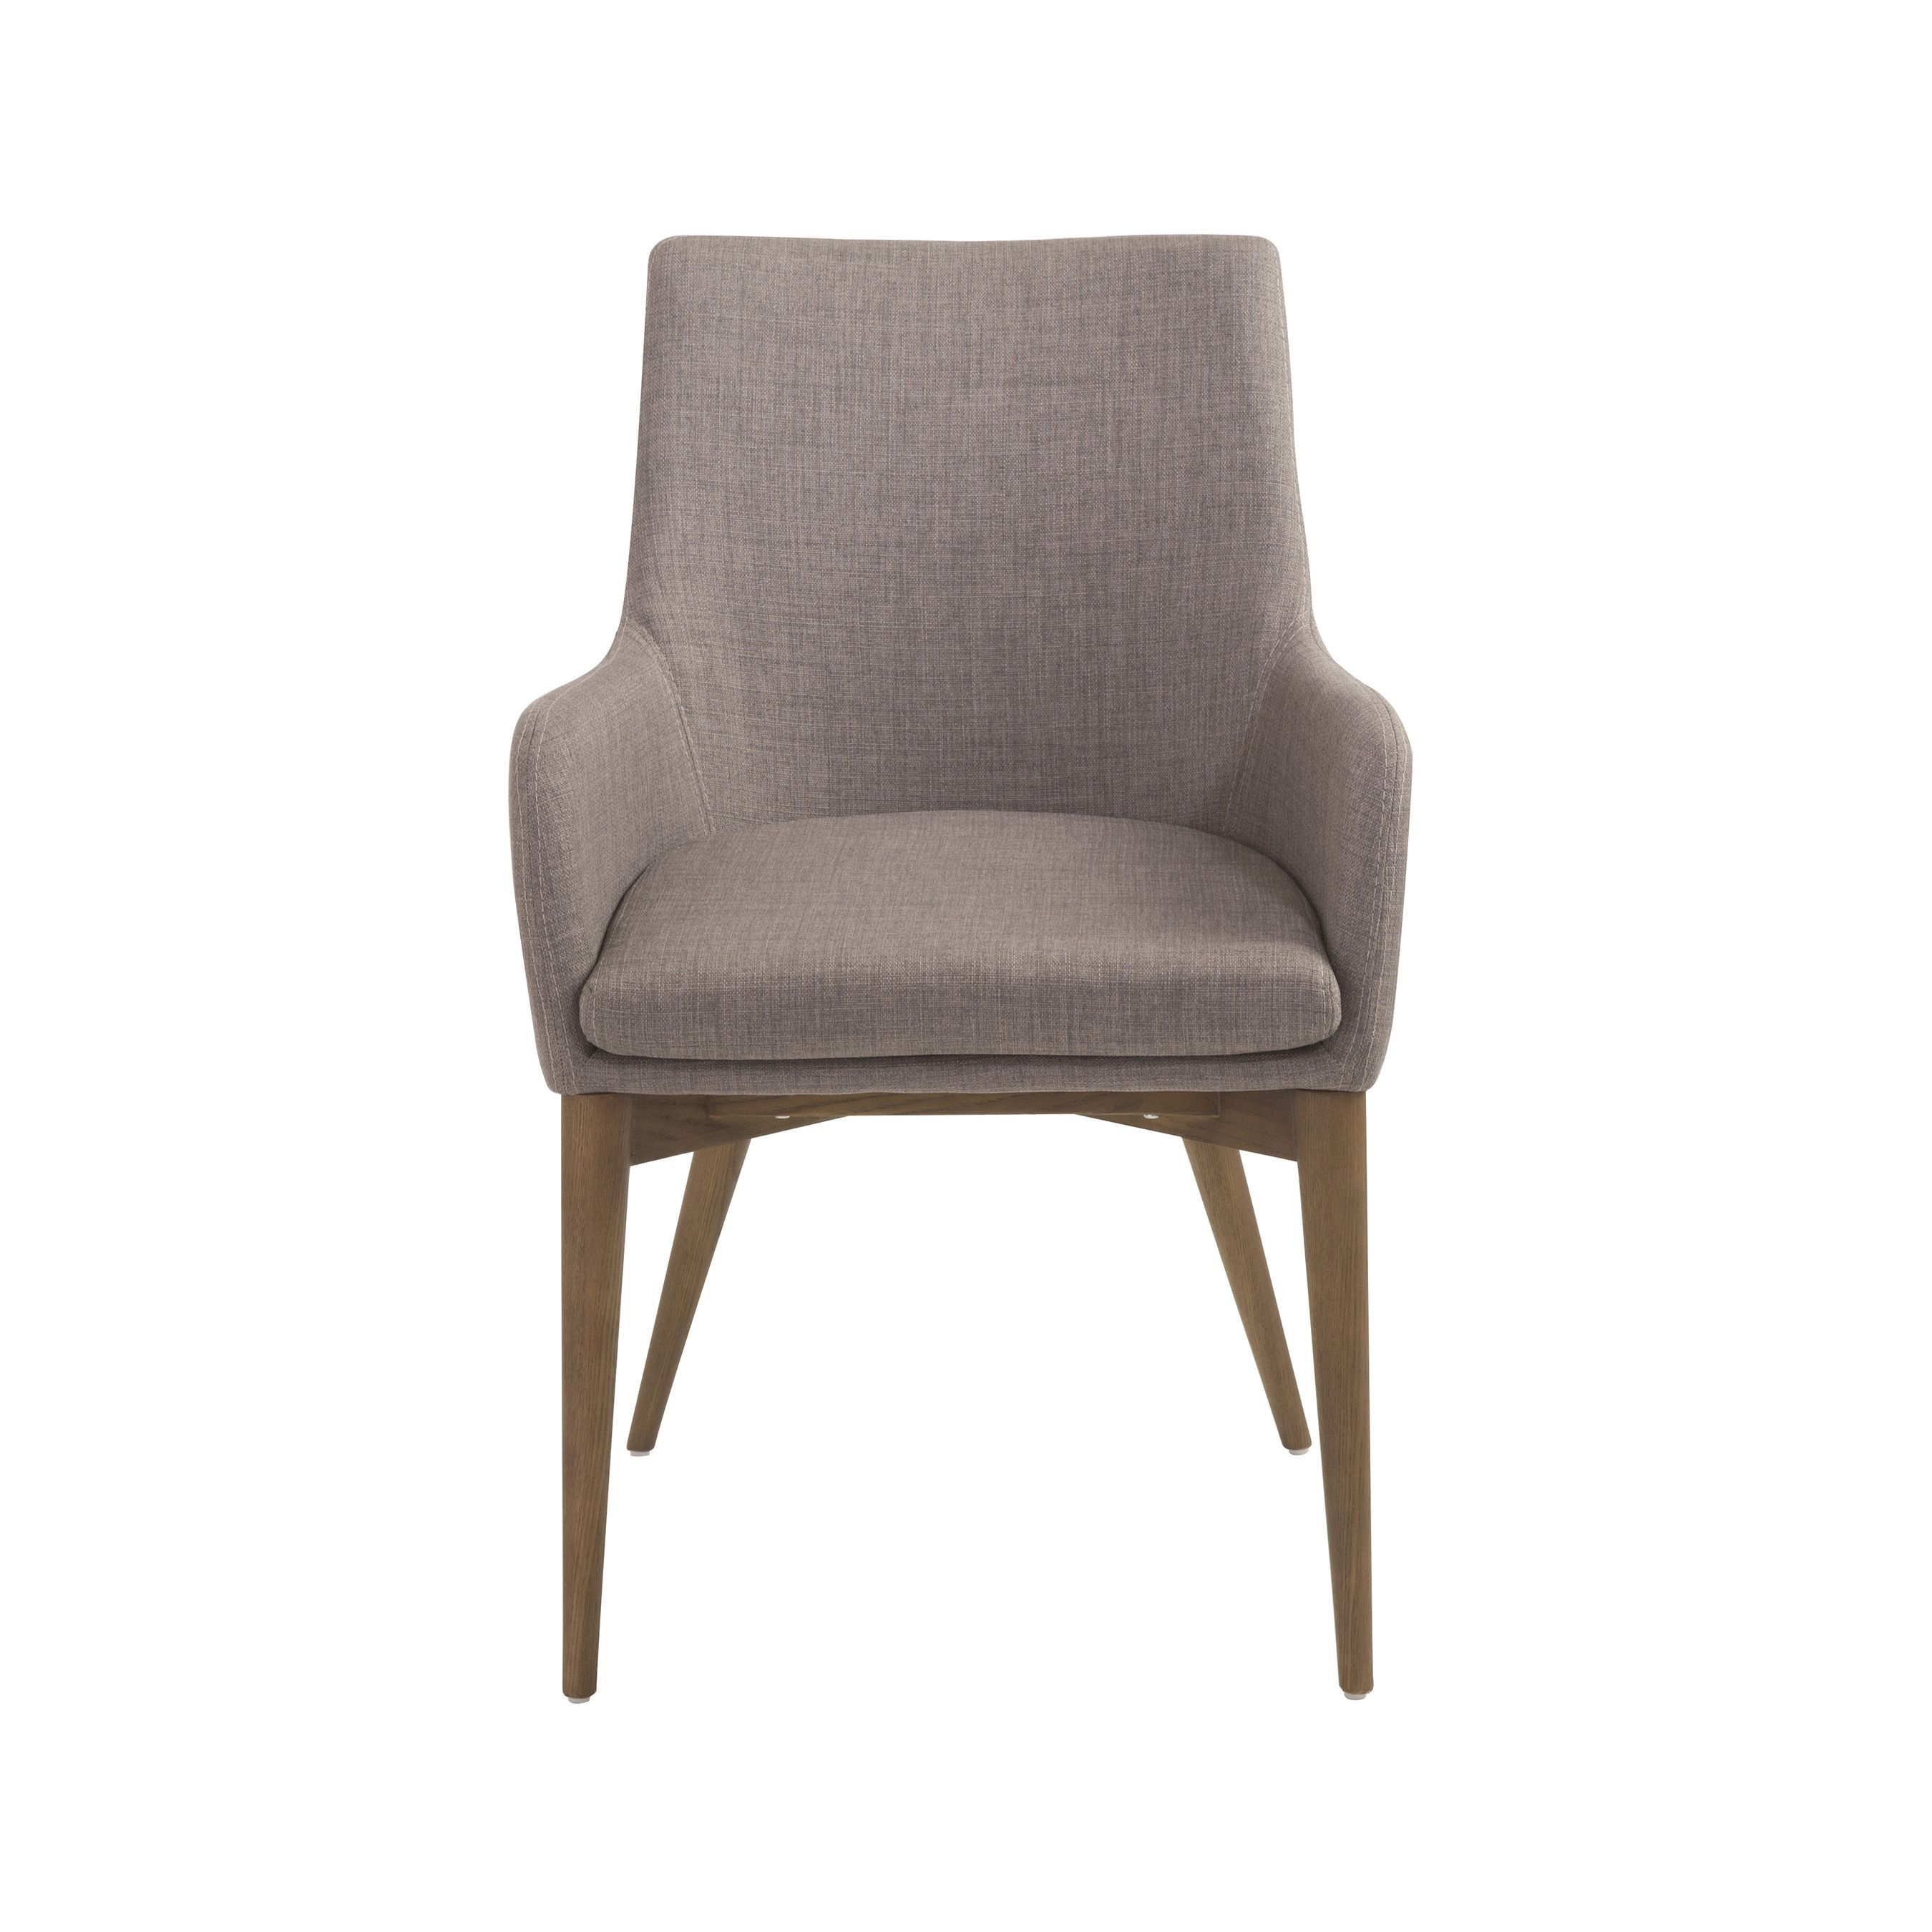 Enjoyable Calais Arm Chair In Dark Gray With Walnut Legs Set Of 2 Ncnpc Chair Design For Home Ncnpcorg